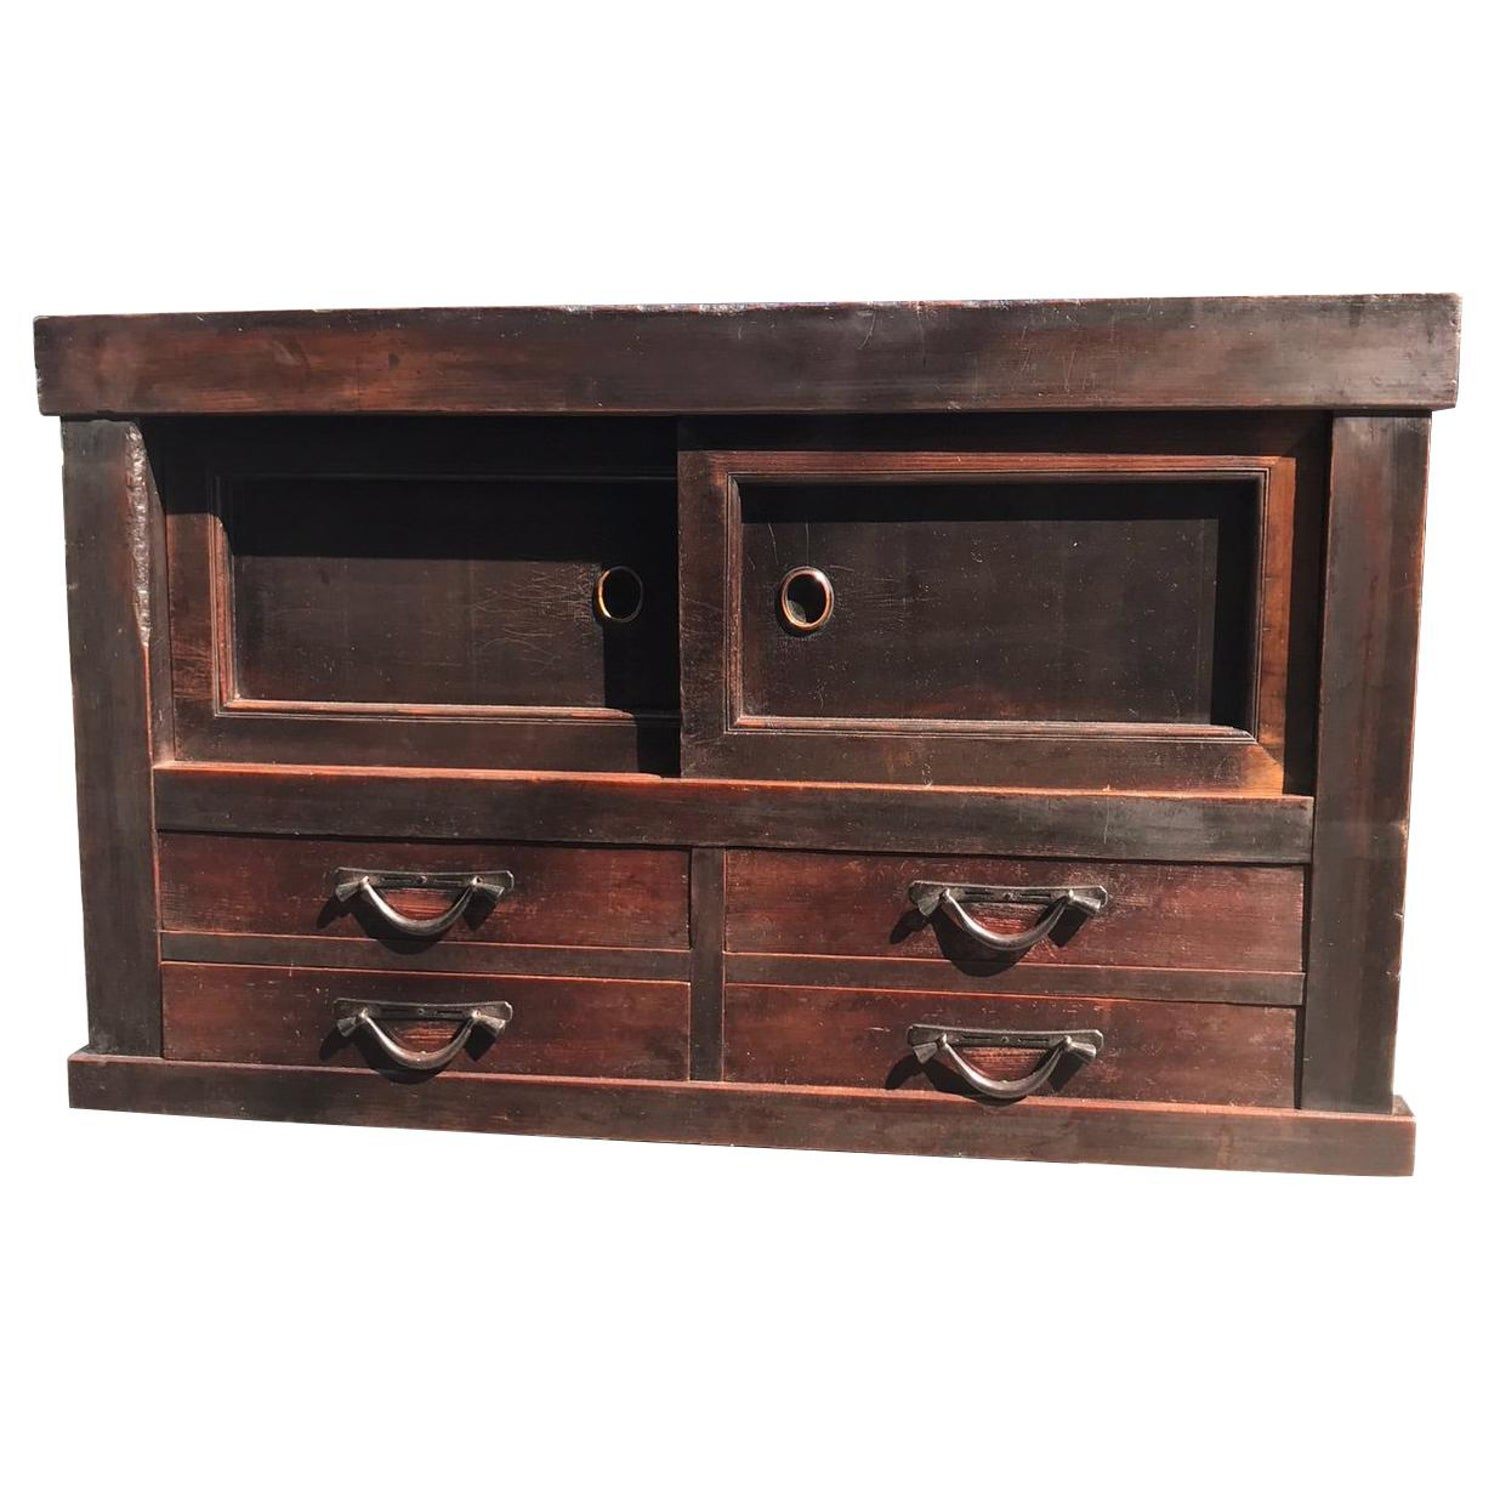 Japanese fine antique handcrafted wood storage cabinet chest 100 original for sale at 1stdibs